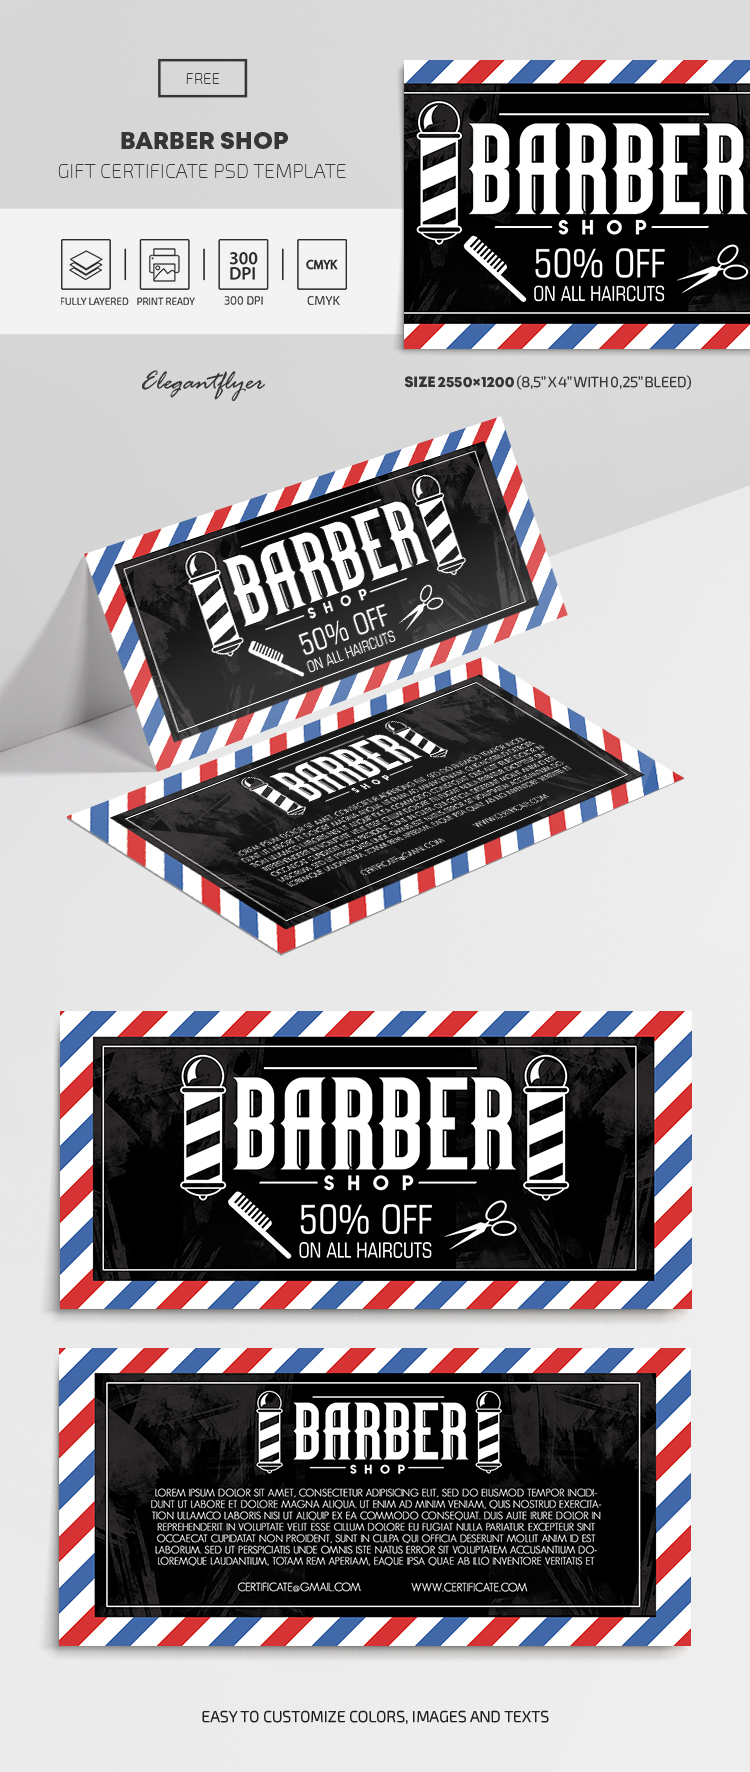 Barber Shop – Free Gift Certificate Template